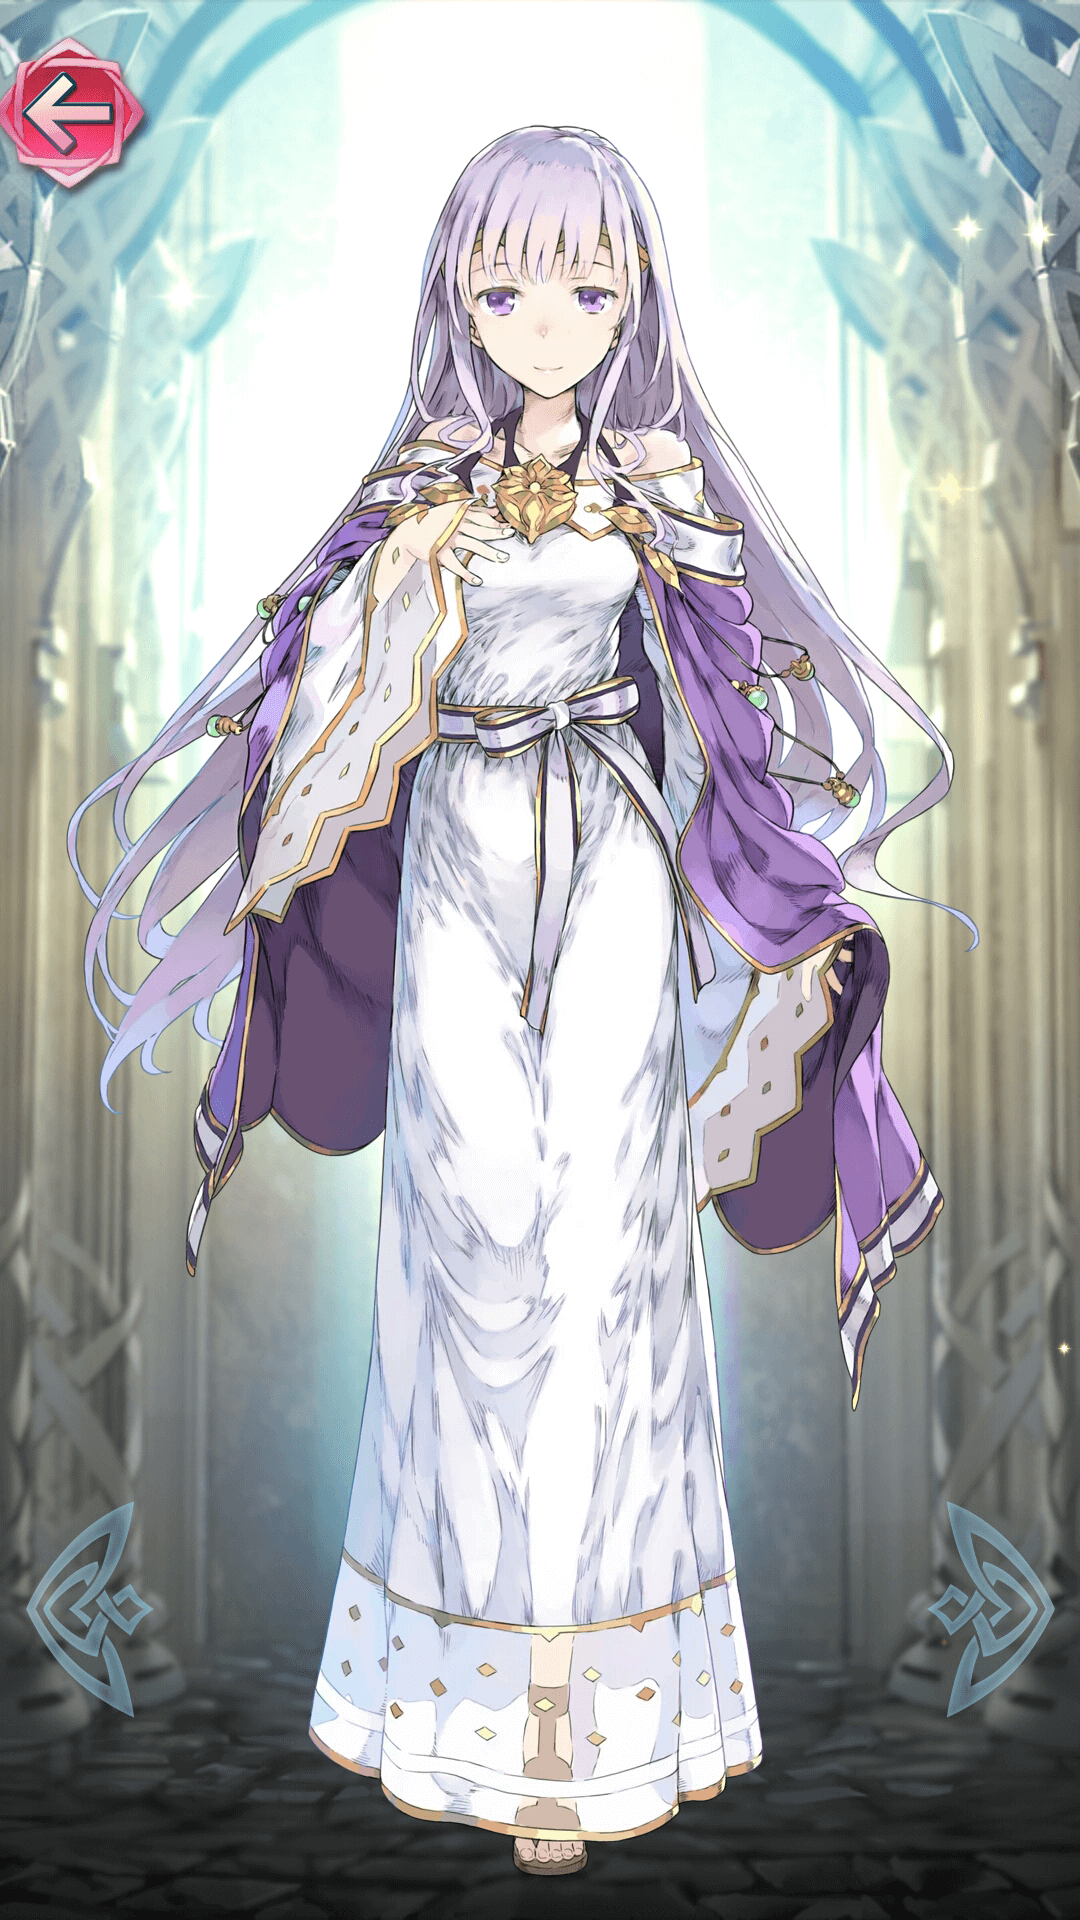 feh_18_06.png